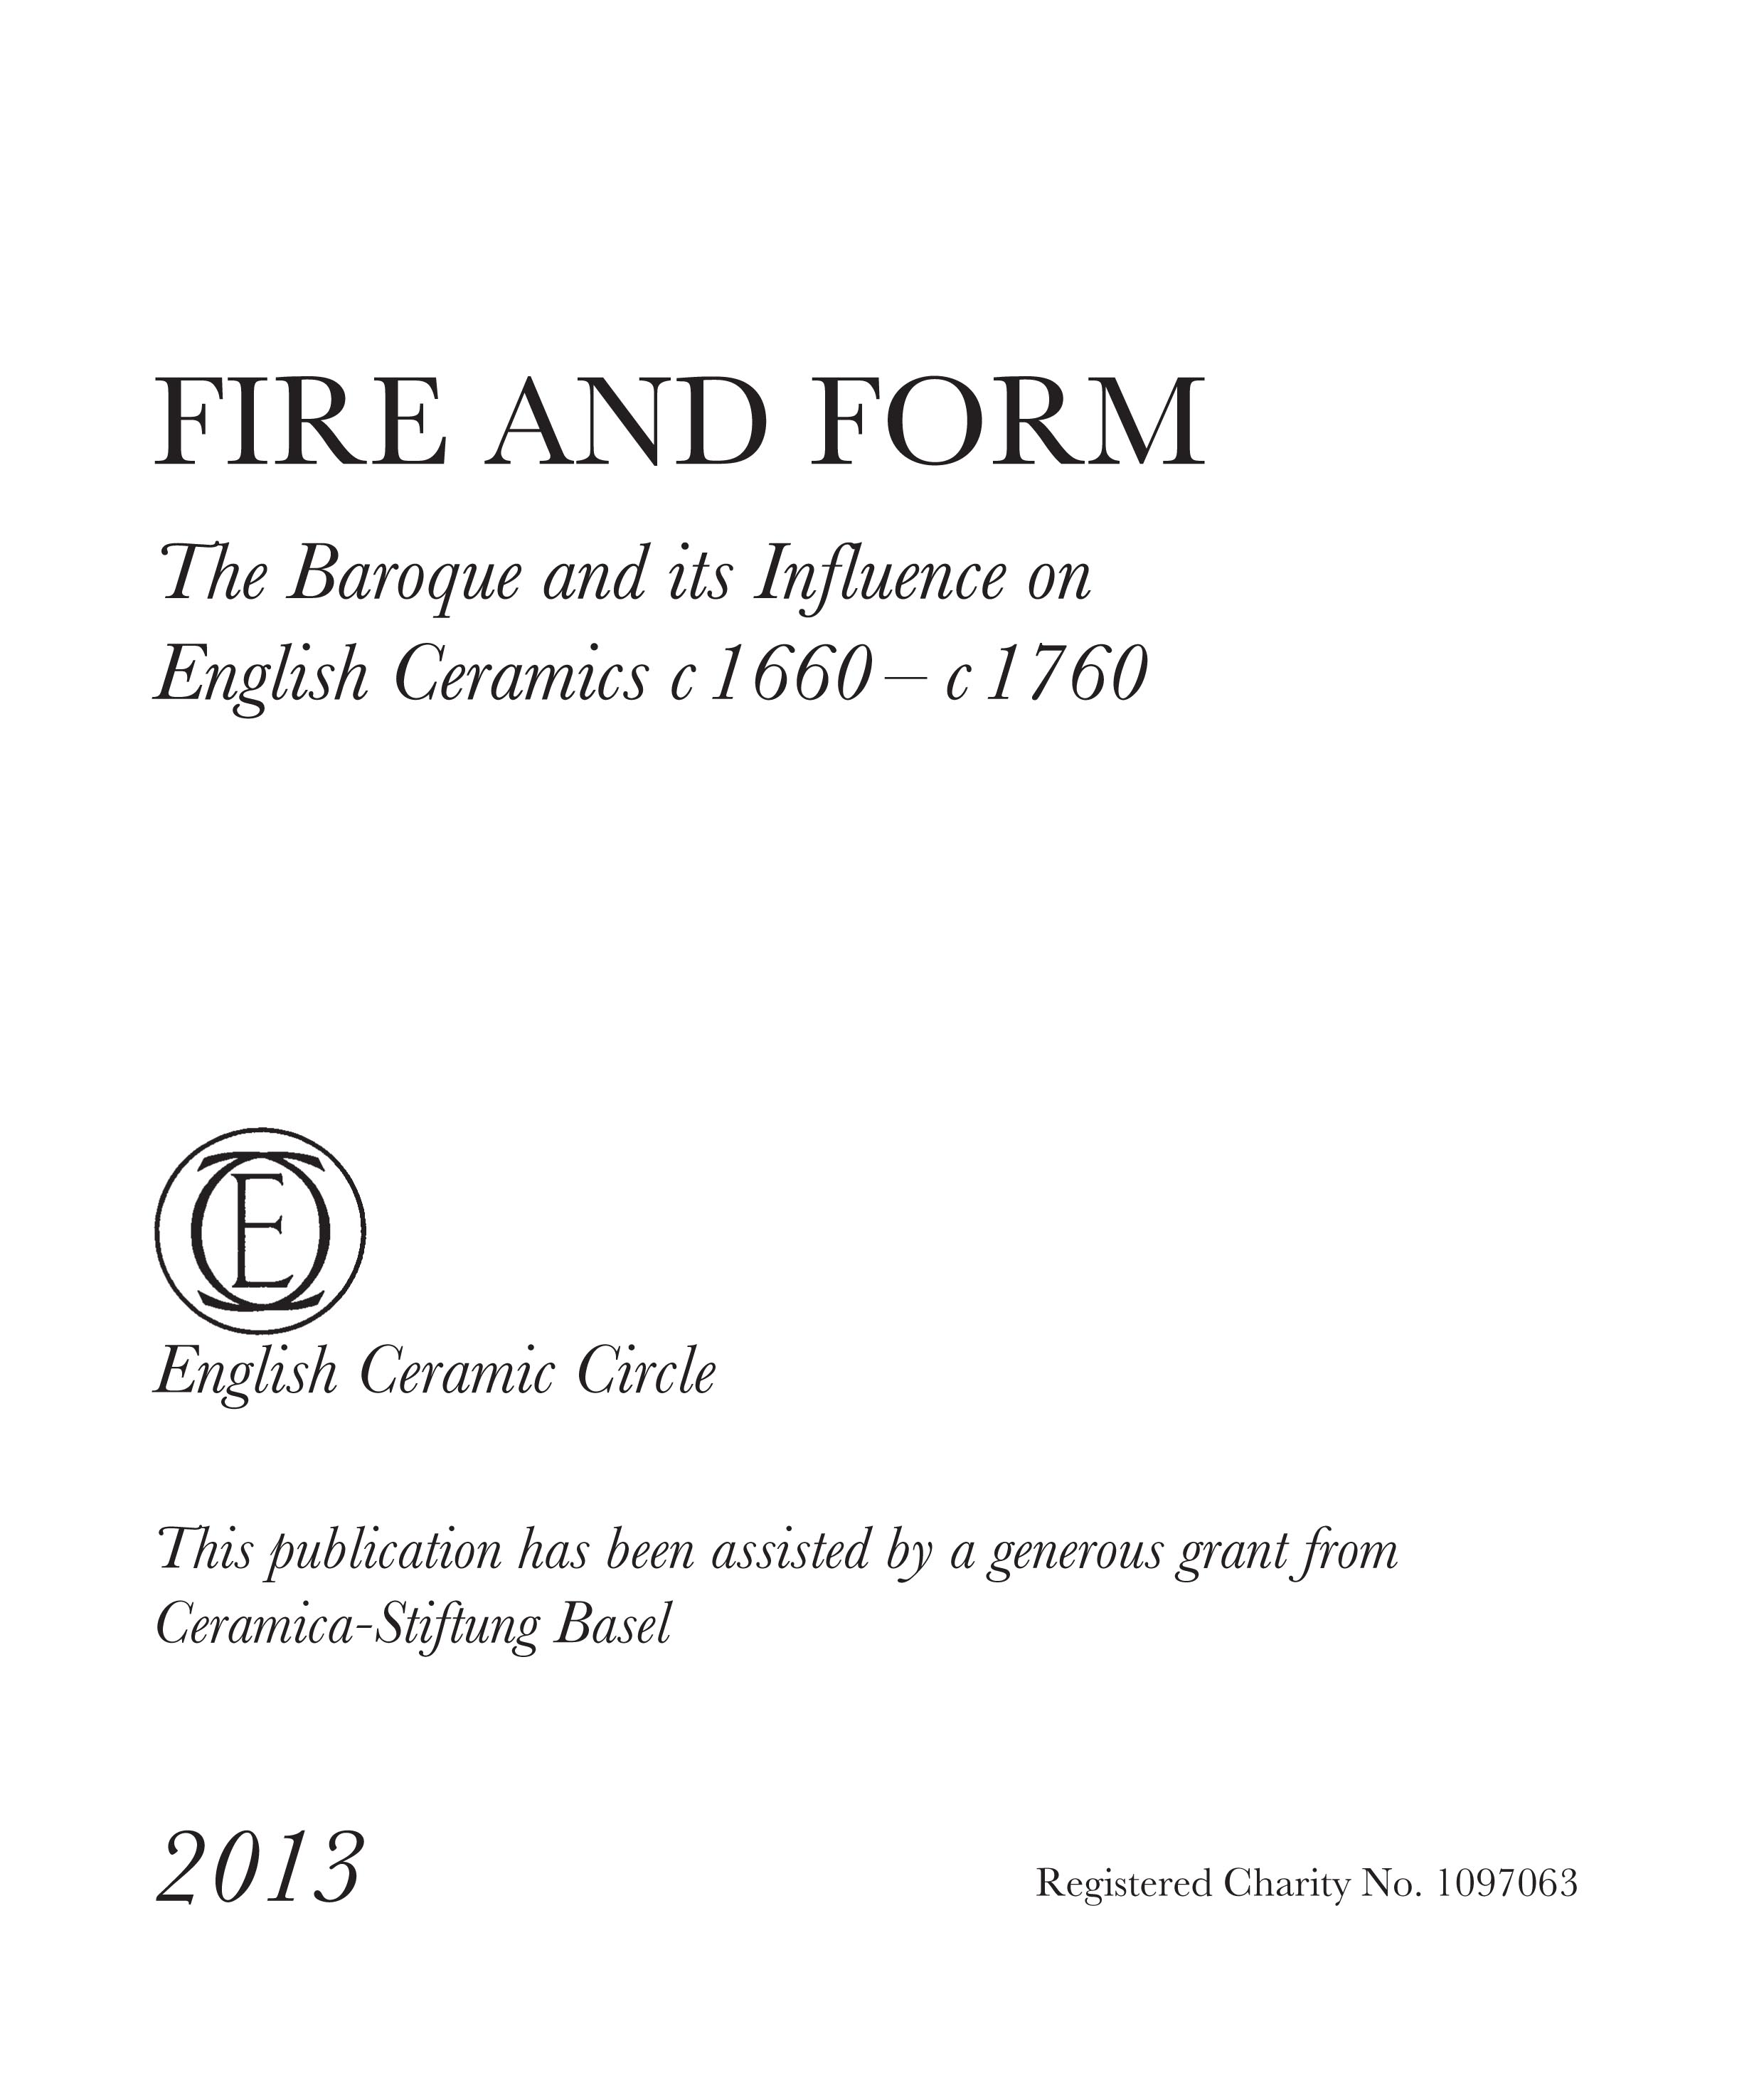 View Fire and Form - The Baroque and its influence on British Ceramics 1660-1760